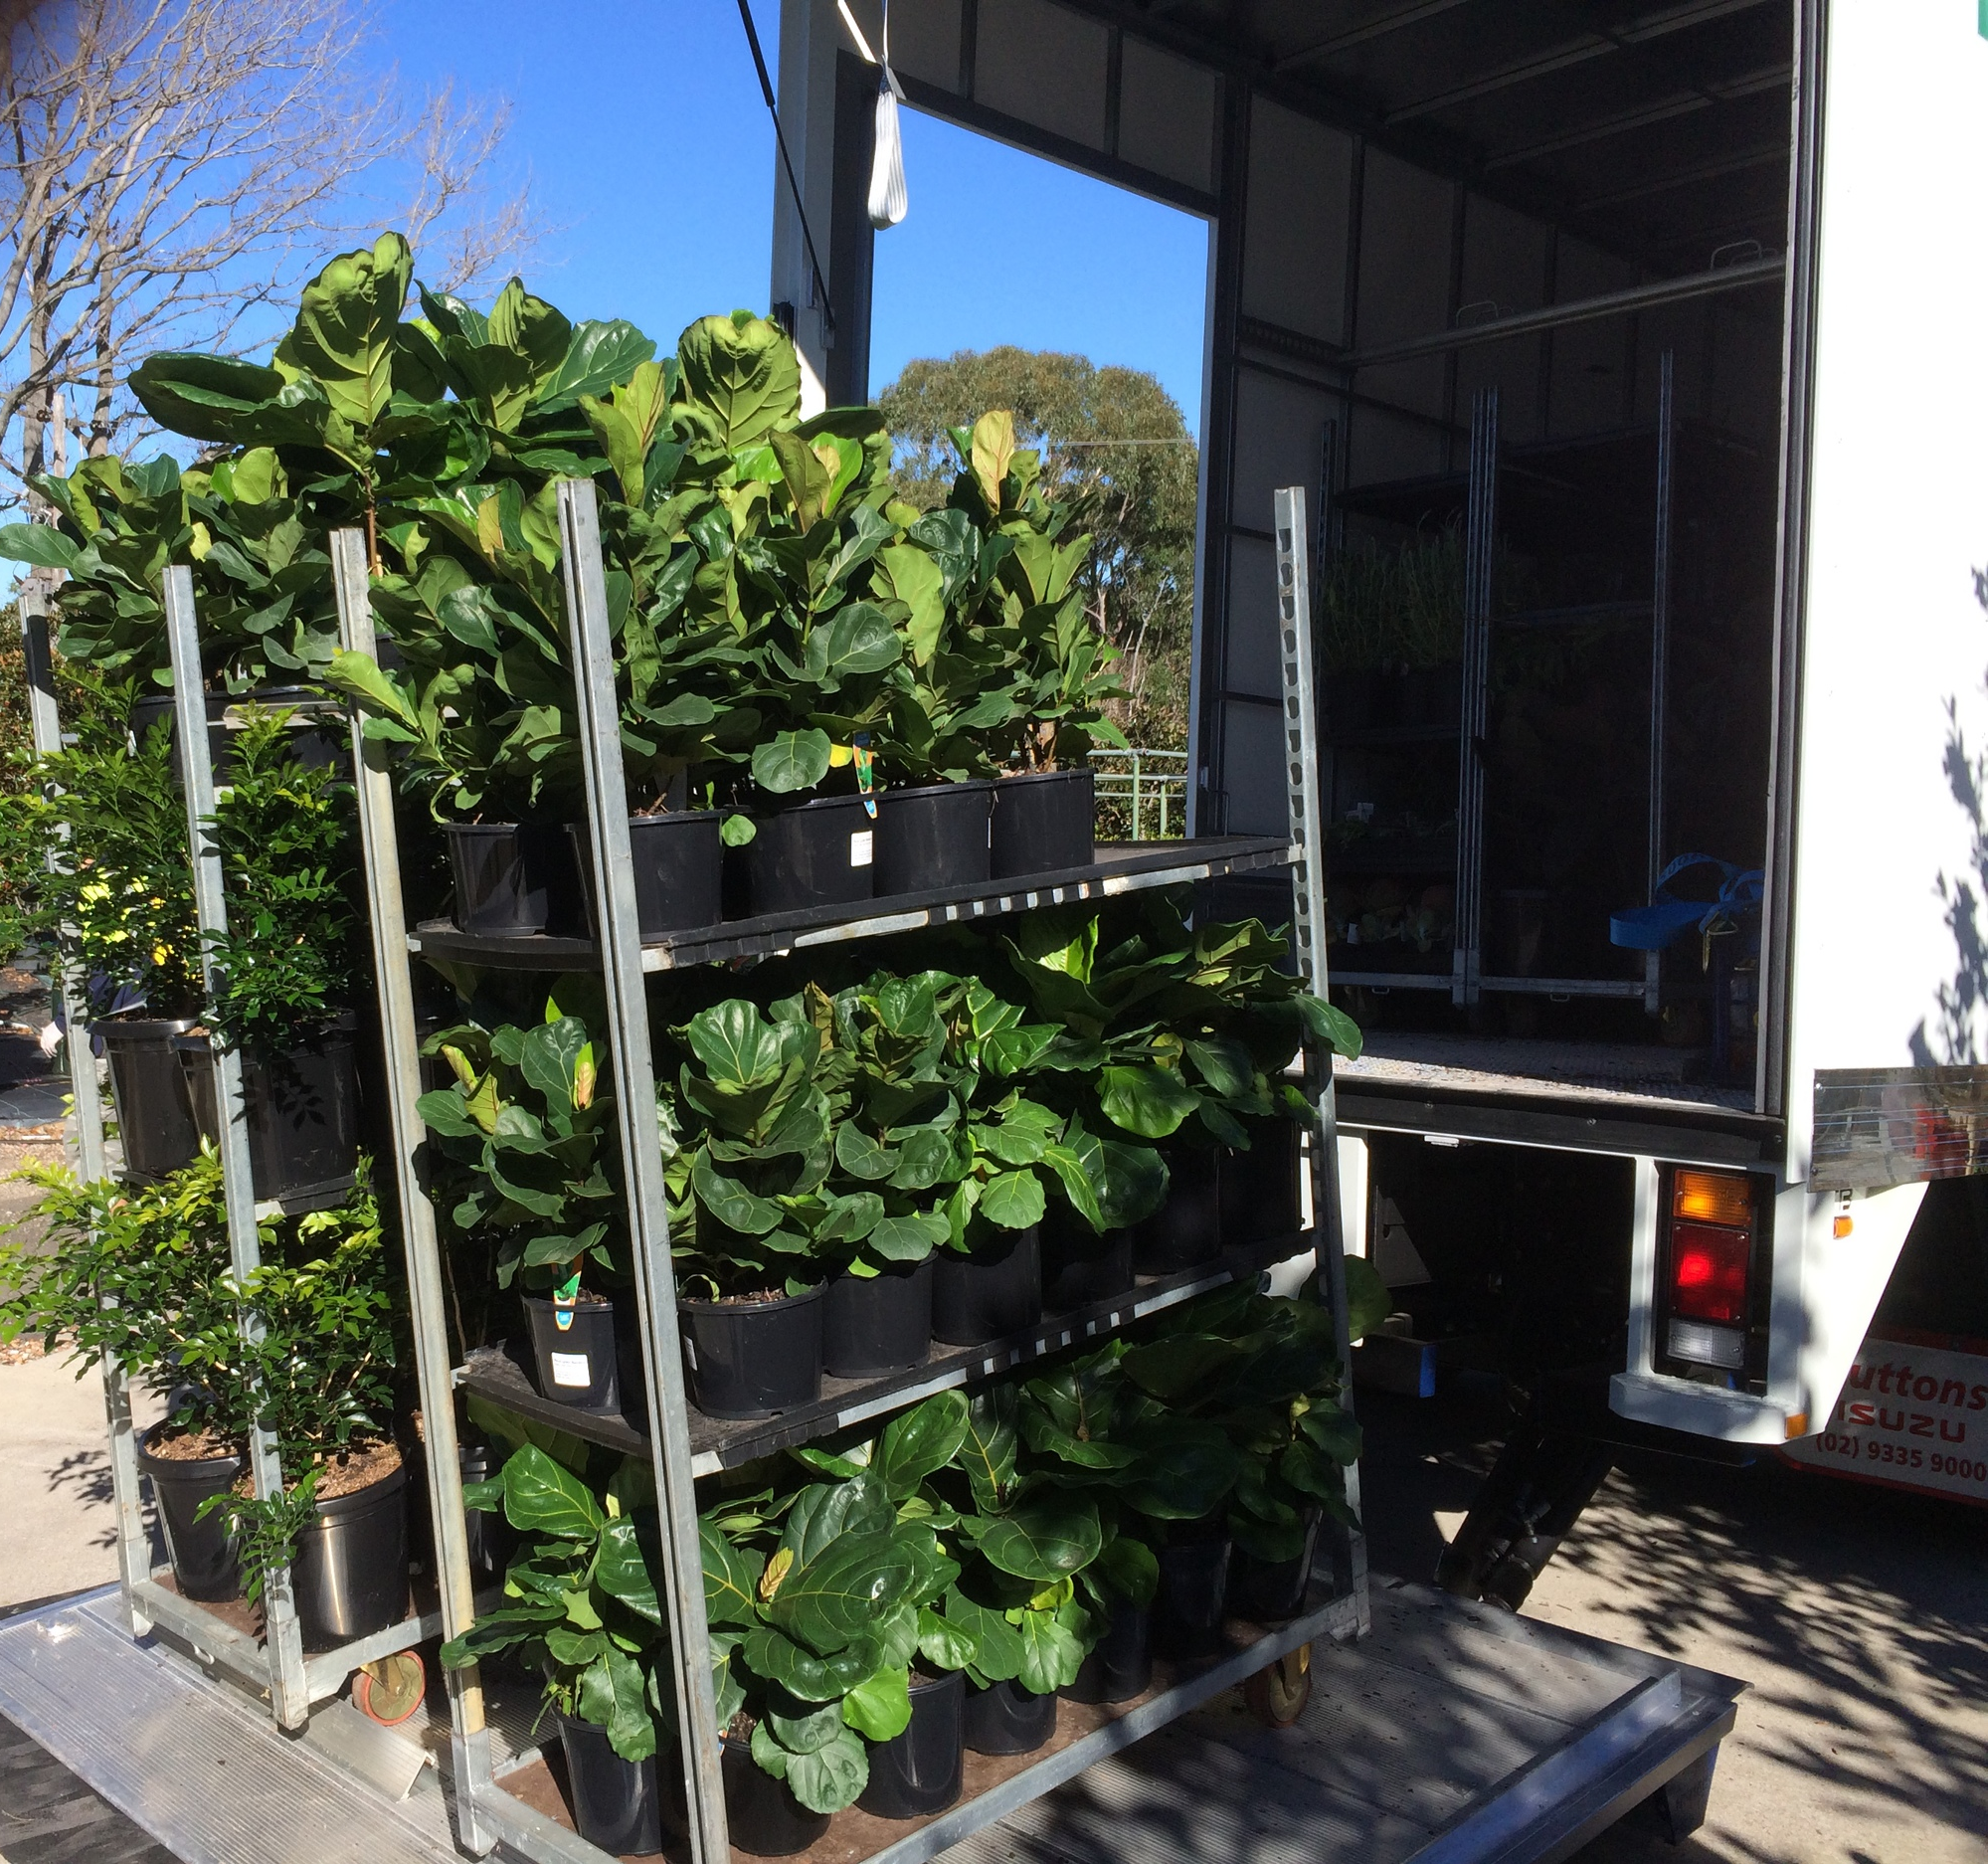 Pictured: Ficus Lyrata 'Fiddle Leaf Fig' being loaded onto our truck. These plants have been in very short demand for several years but luckily Honeysuckle has a secret source in Queensland and we have customers contacting us from far and wide to order them.